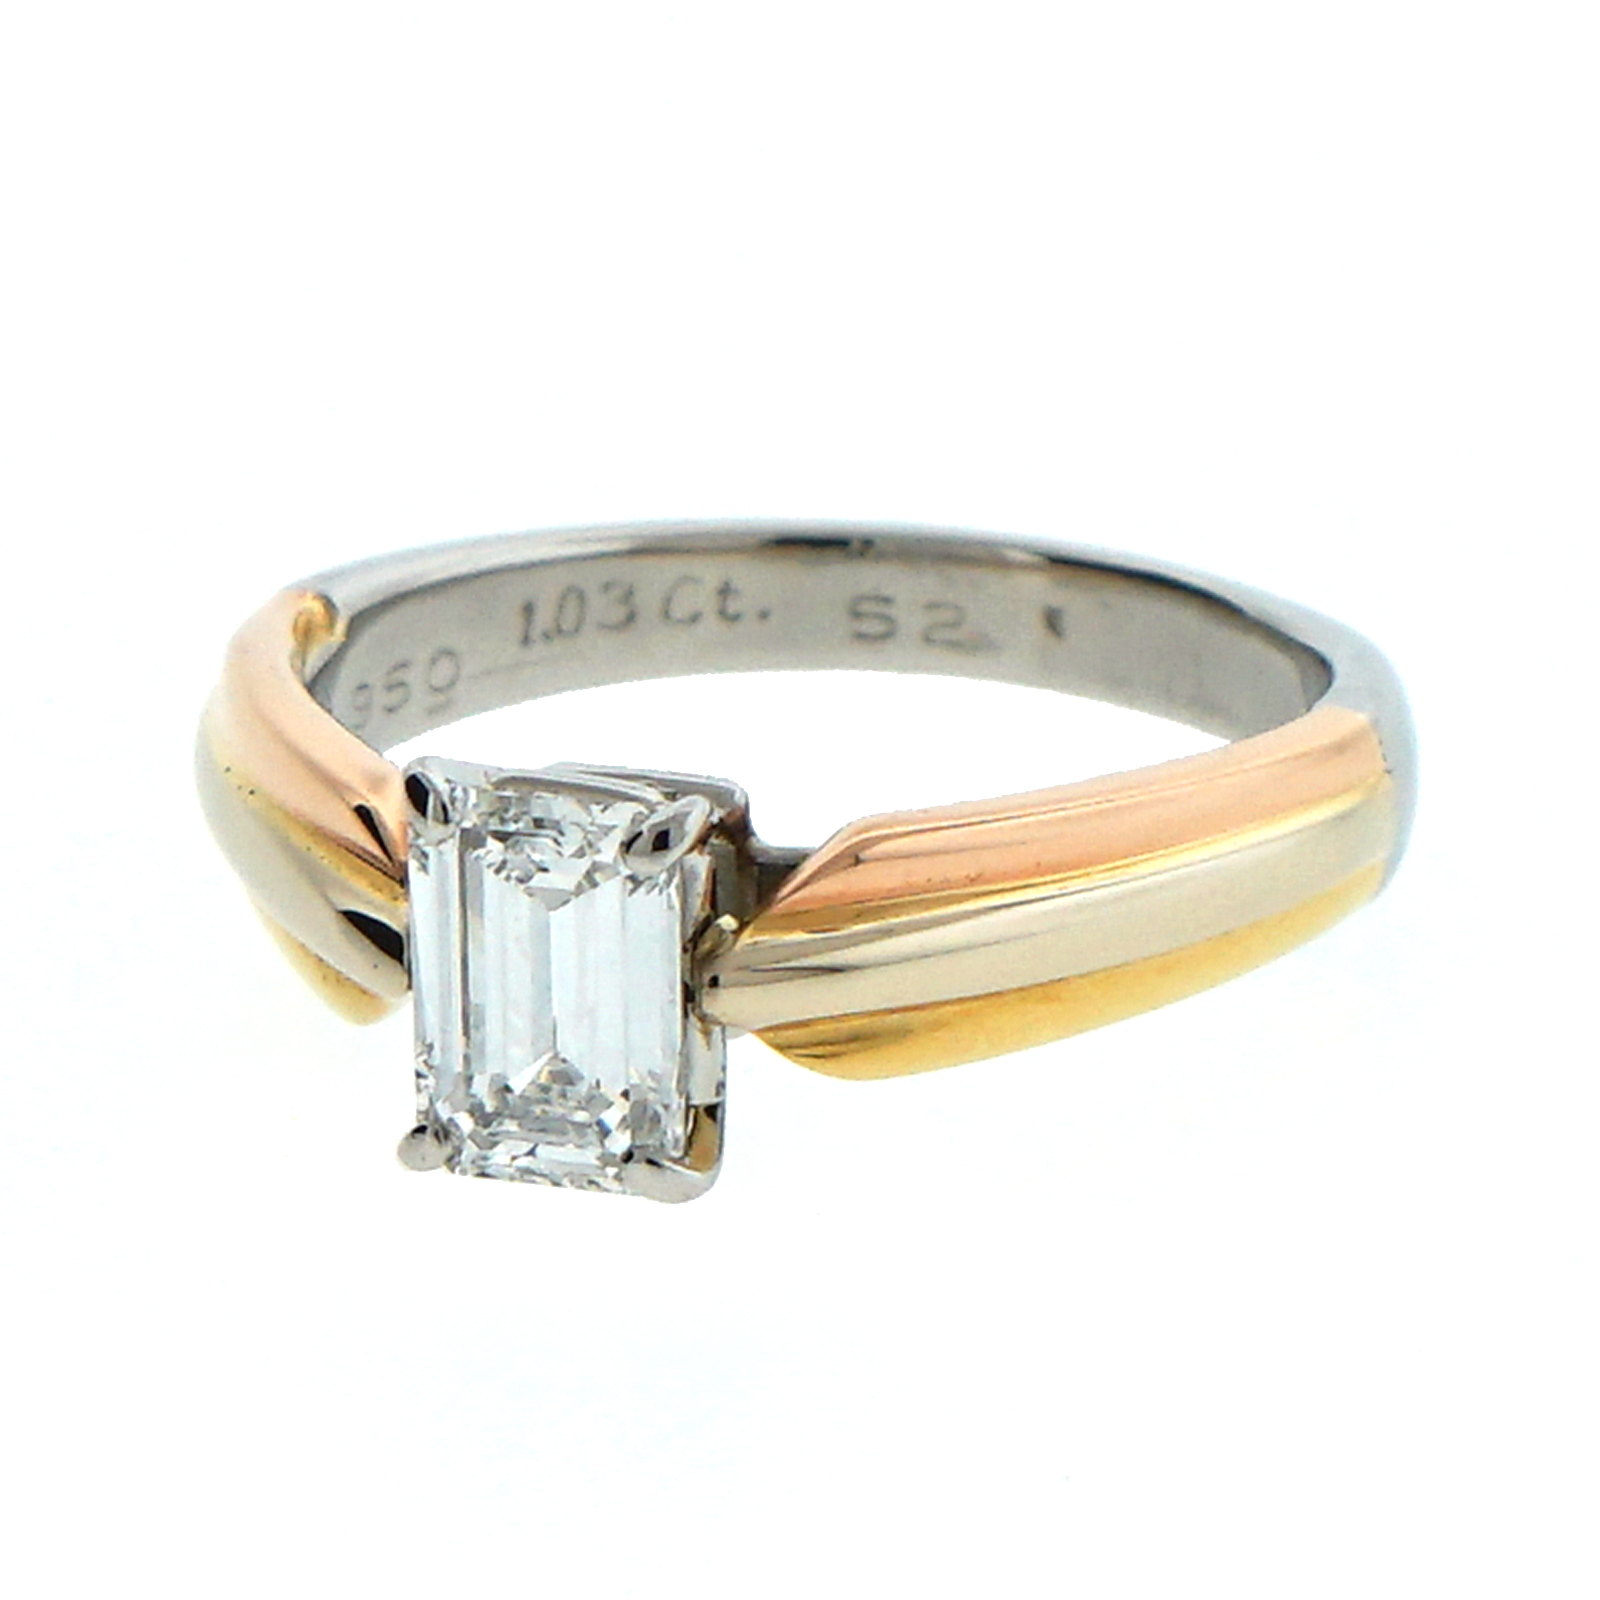 Cartier Solitaire Emerald Cut Trinity Setting Engagement